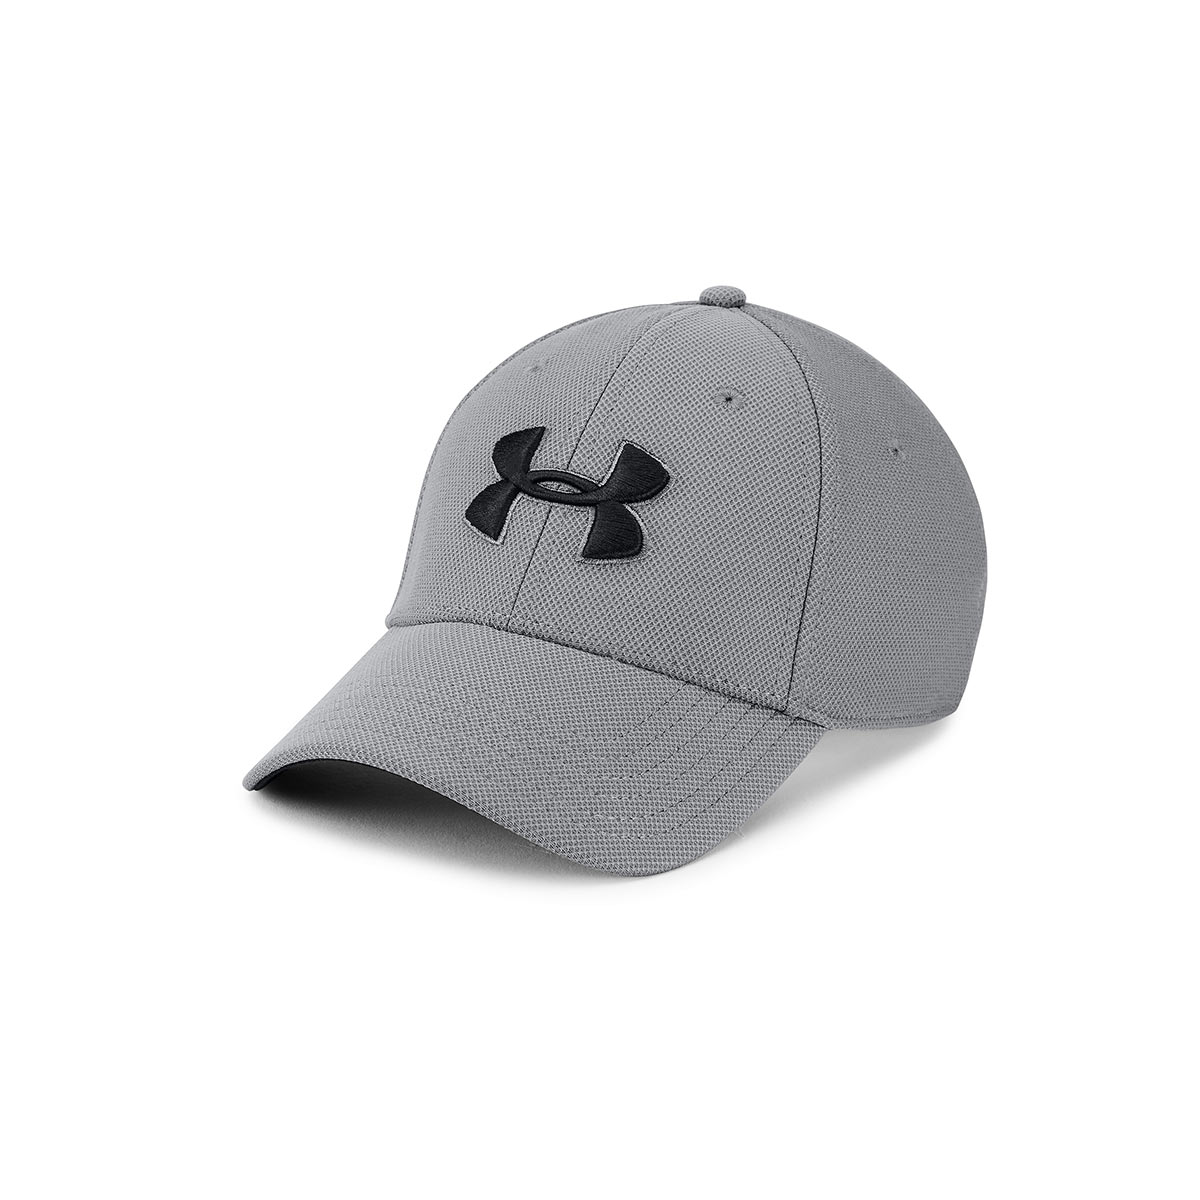 new style 5faa6 ebc39 ... Under Armour Blitzing 3.0 Cap Graphite · 1305036-040-front